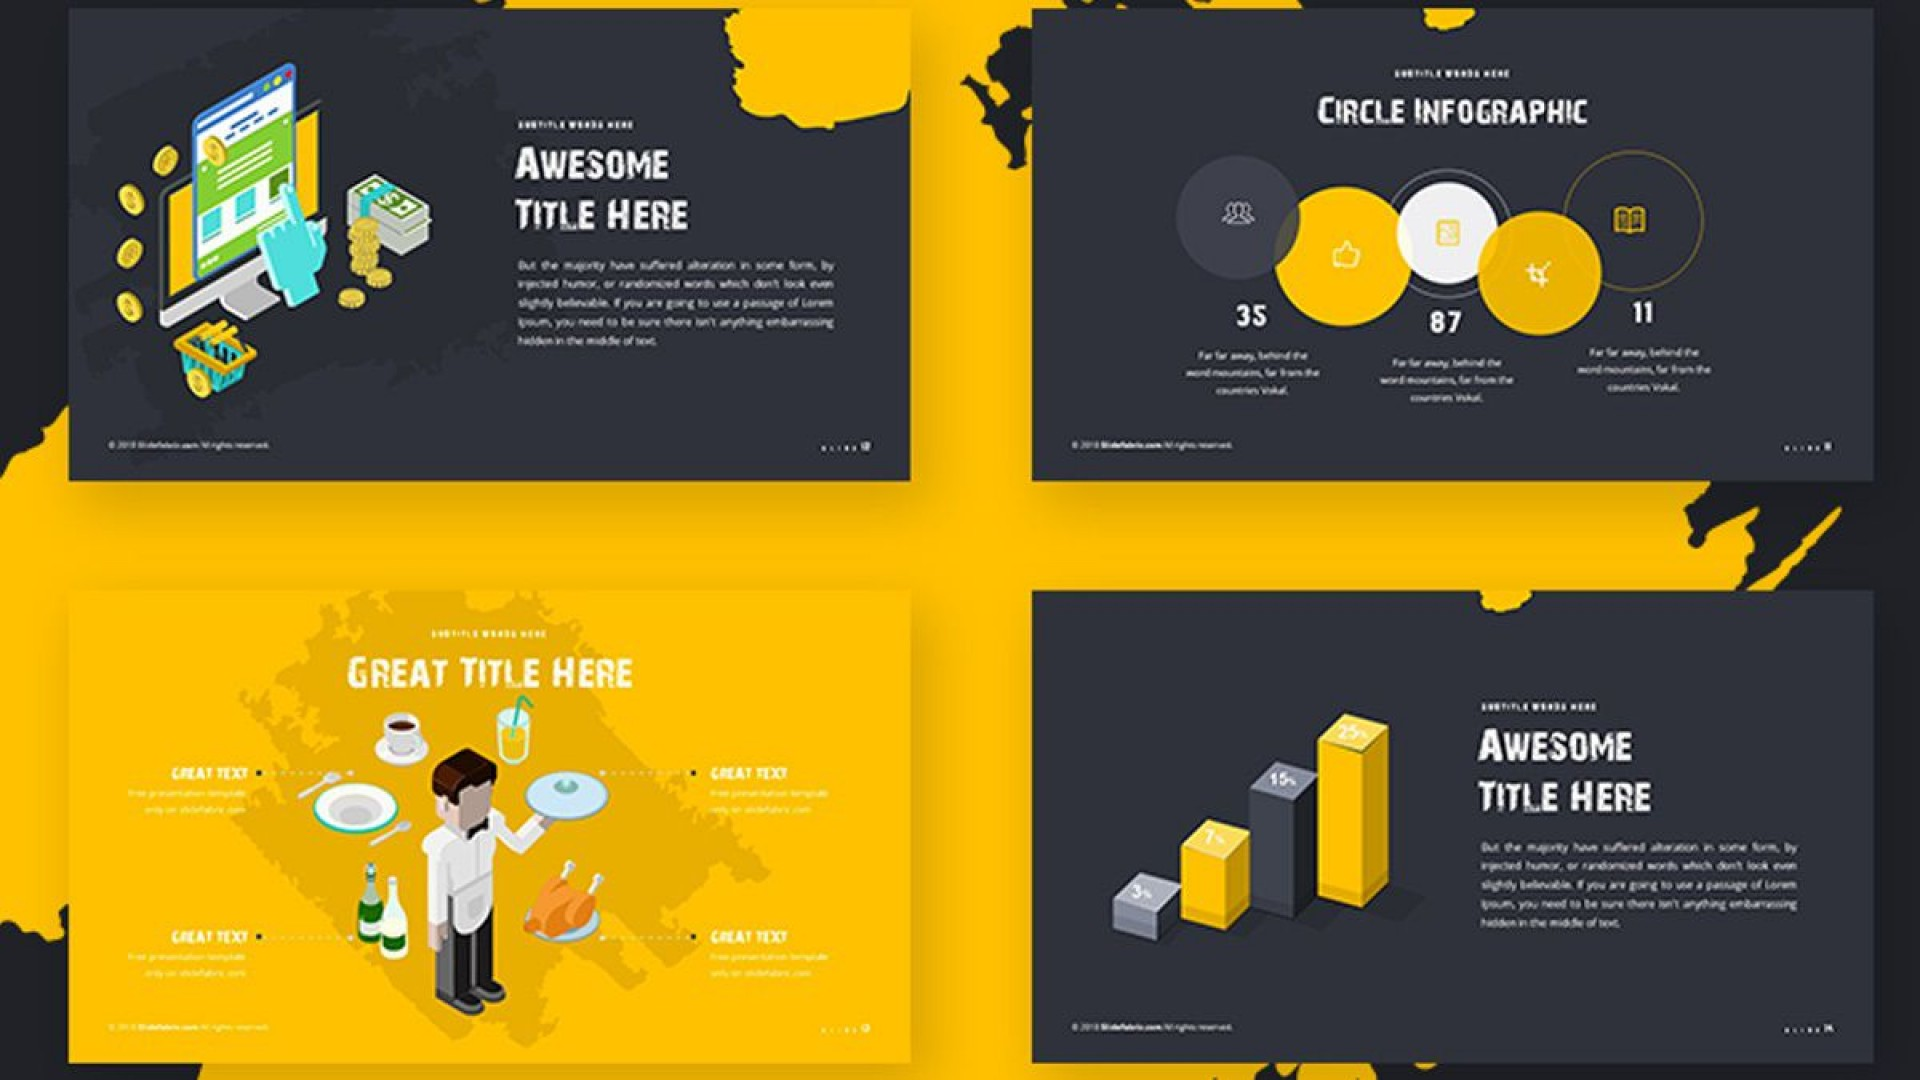 002 Unforgettable Best Powerpoint Template Free High Resolution  Busines Download White Background 20191920